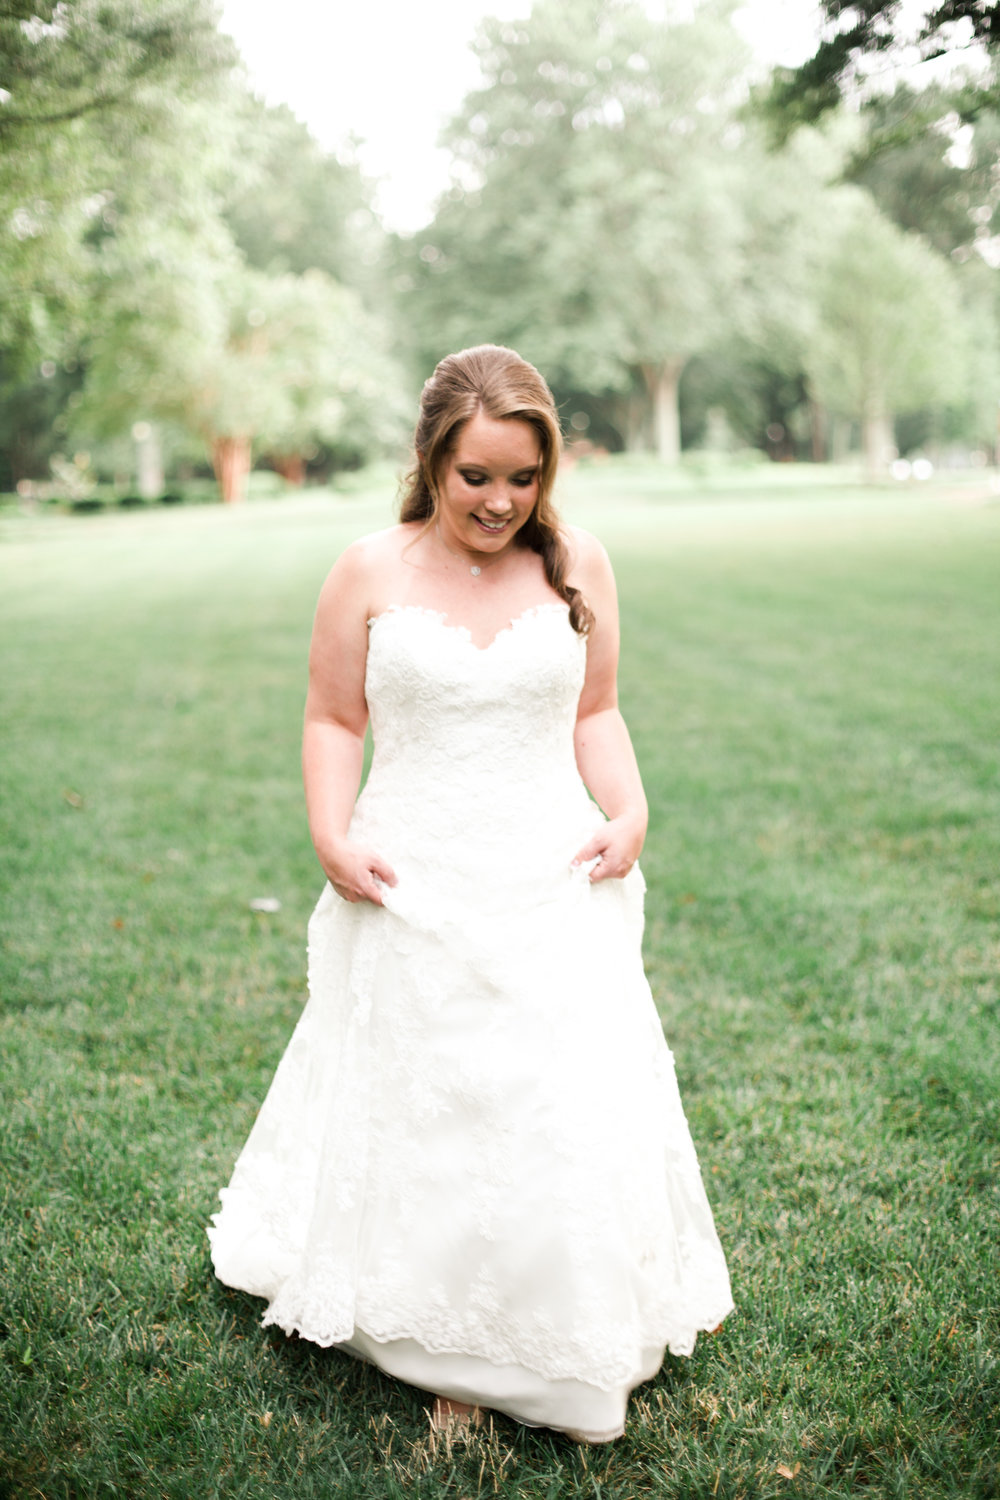 gabbie_bridal_poured_out_photography-38.jpg